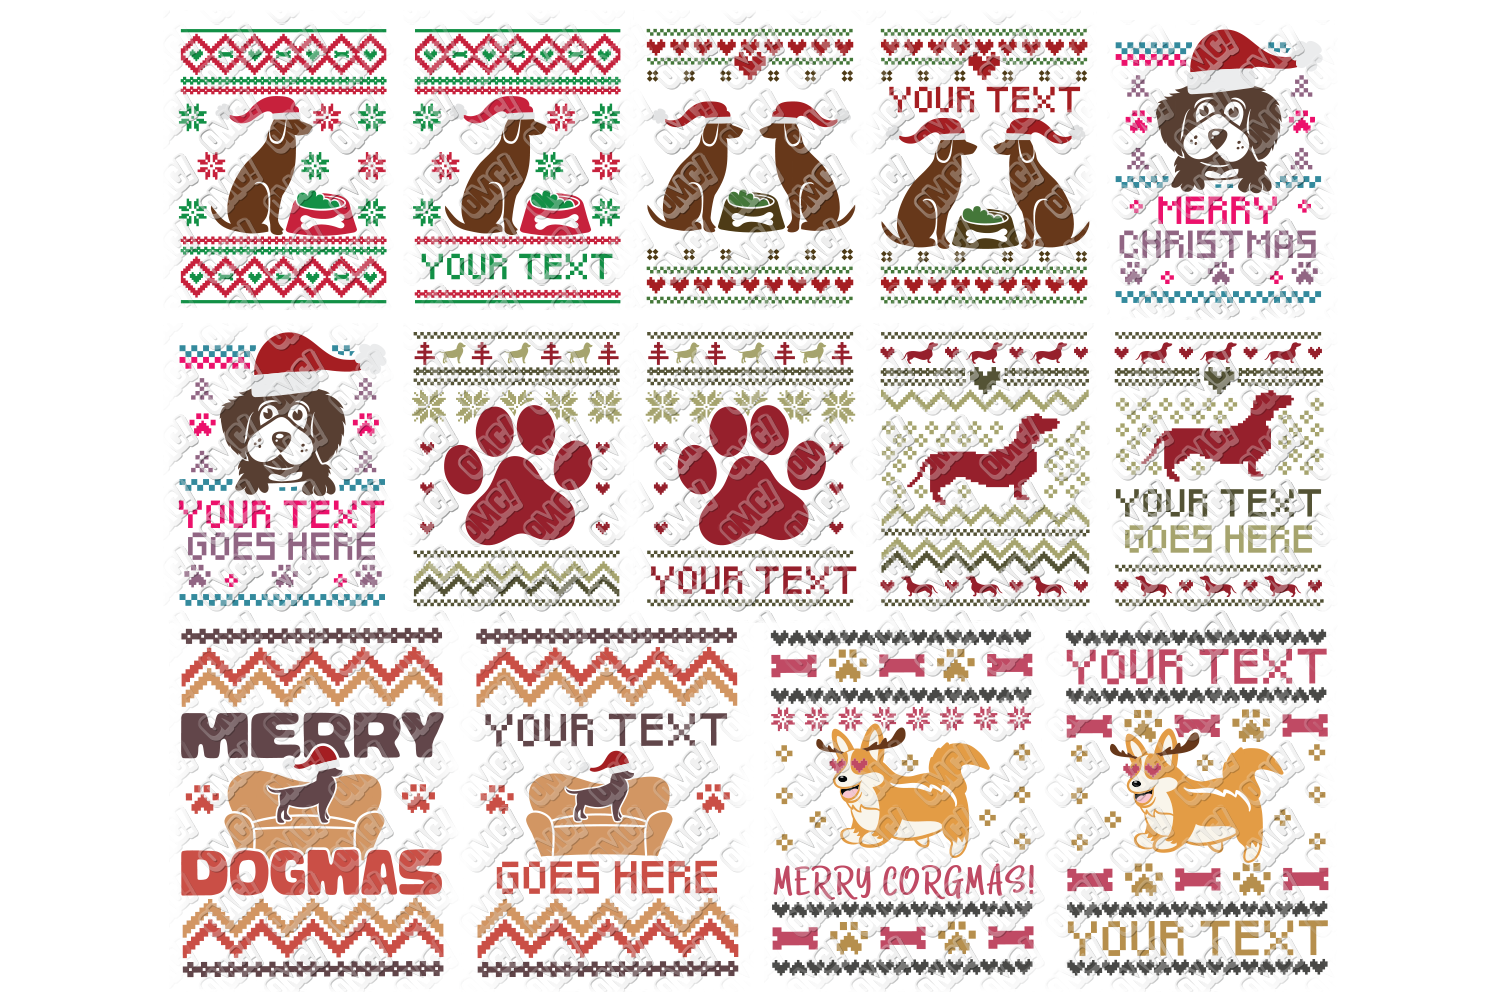 Dog Ugly Christmas SVG Template in SVG, DXF, PNG, EPS, JPG example image 1